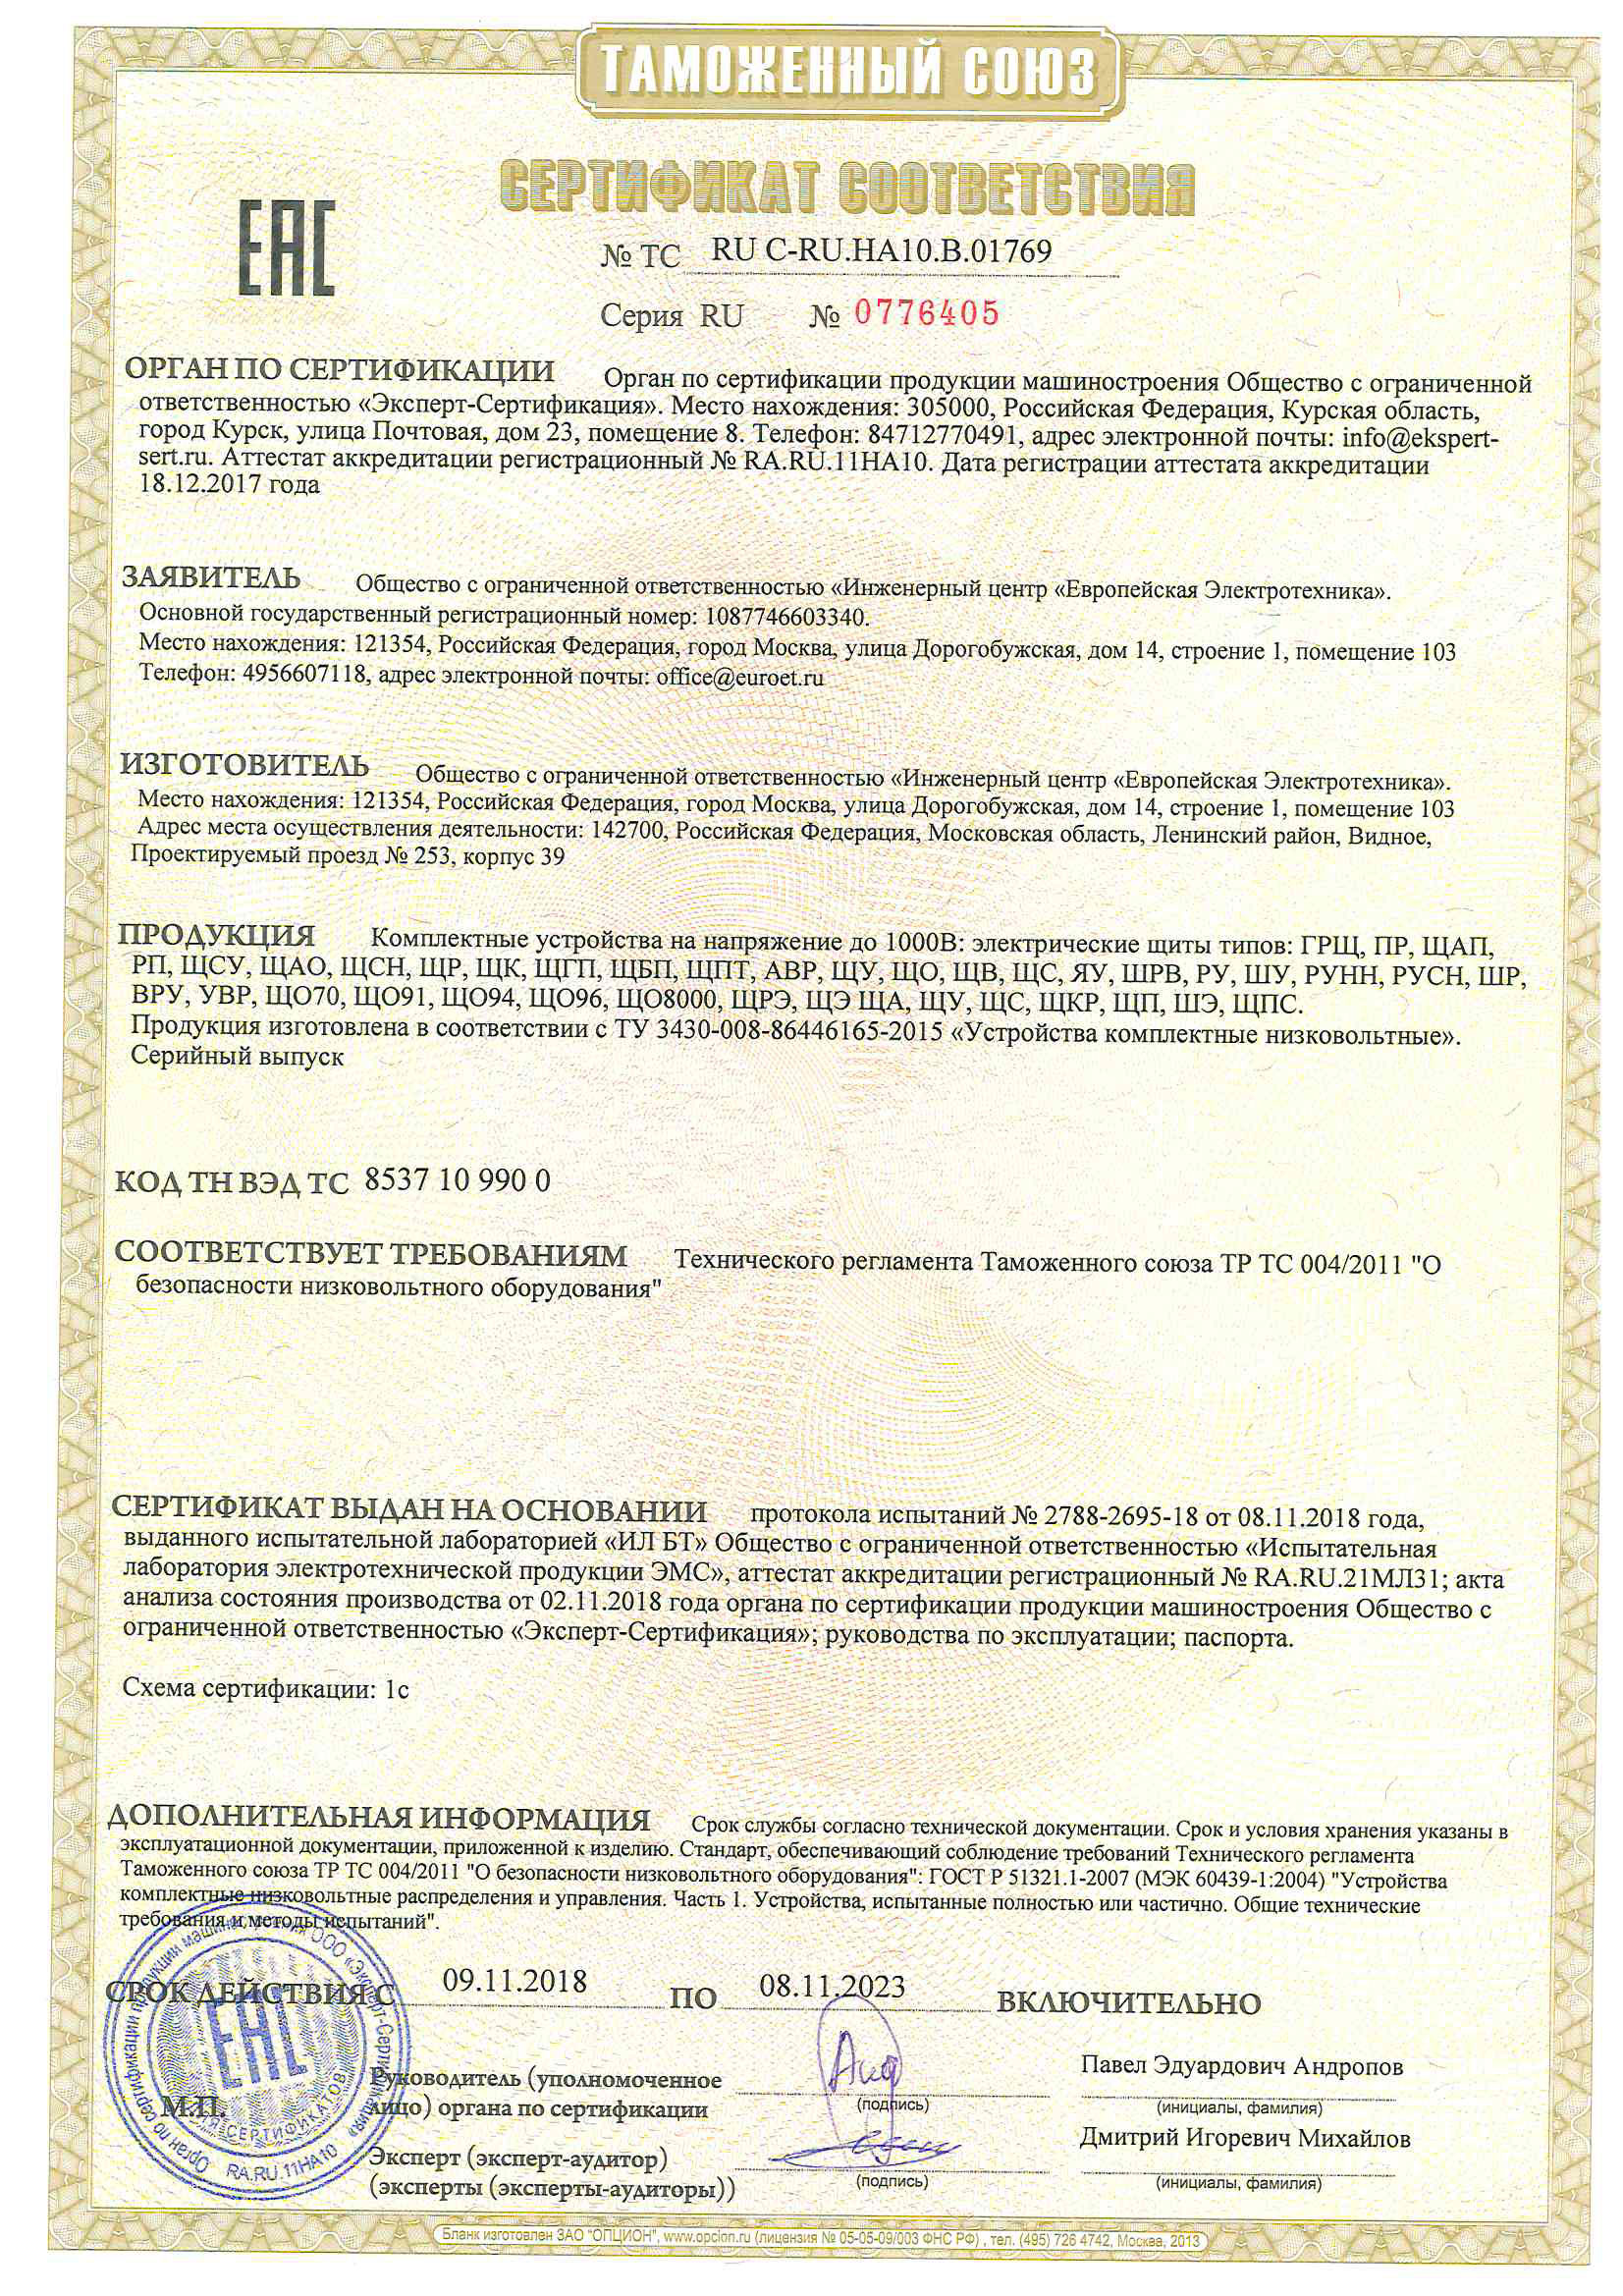 Certificate of Conformity to the Requirements of TRTS On Safety of Low-Voltage Equipment